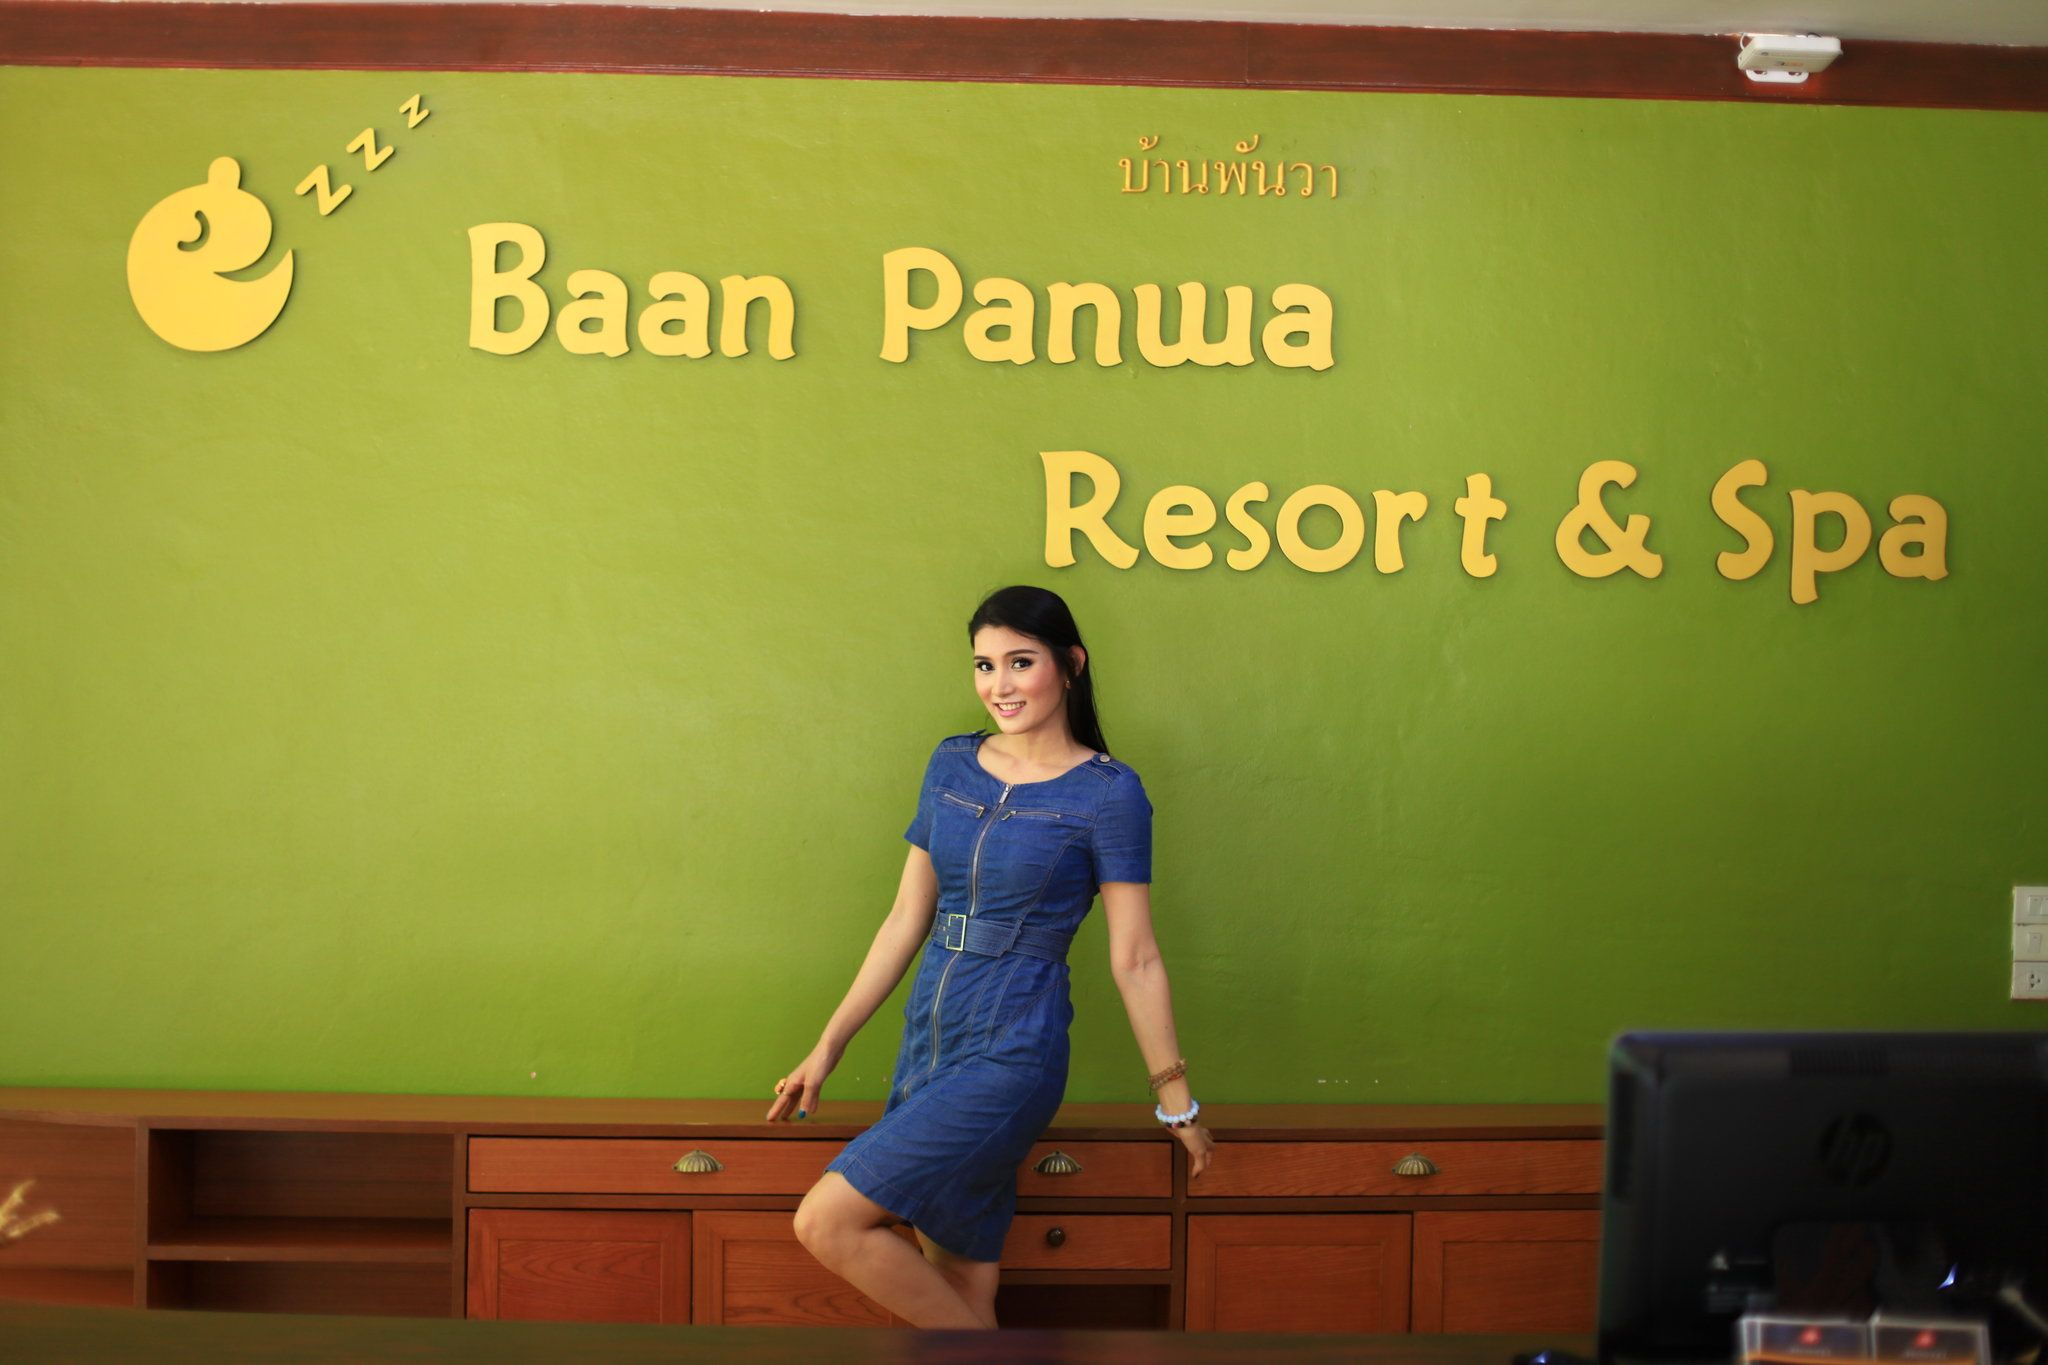 Baan Panwa Resort